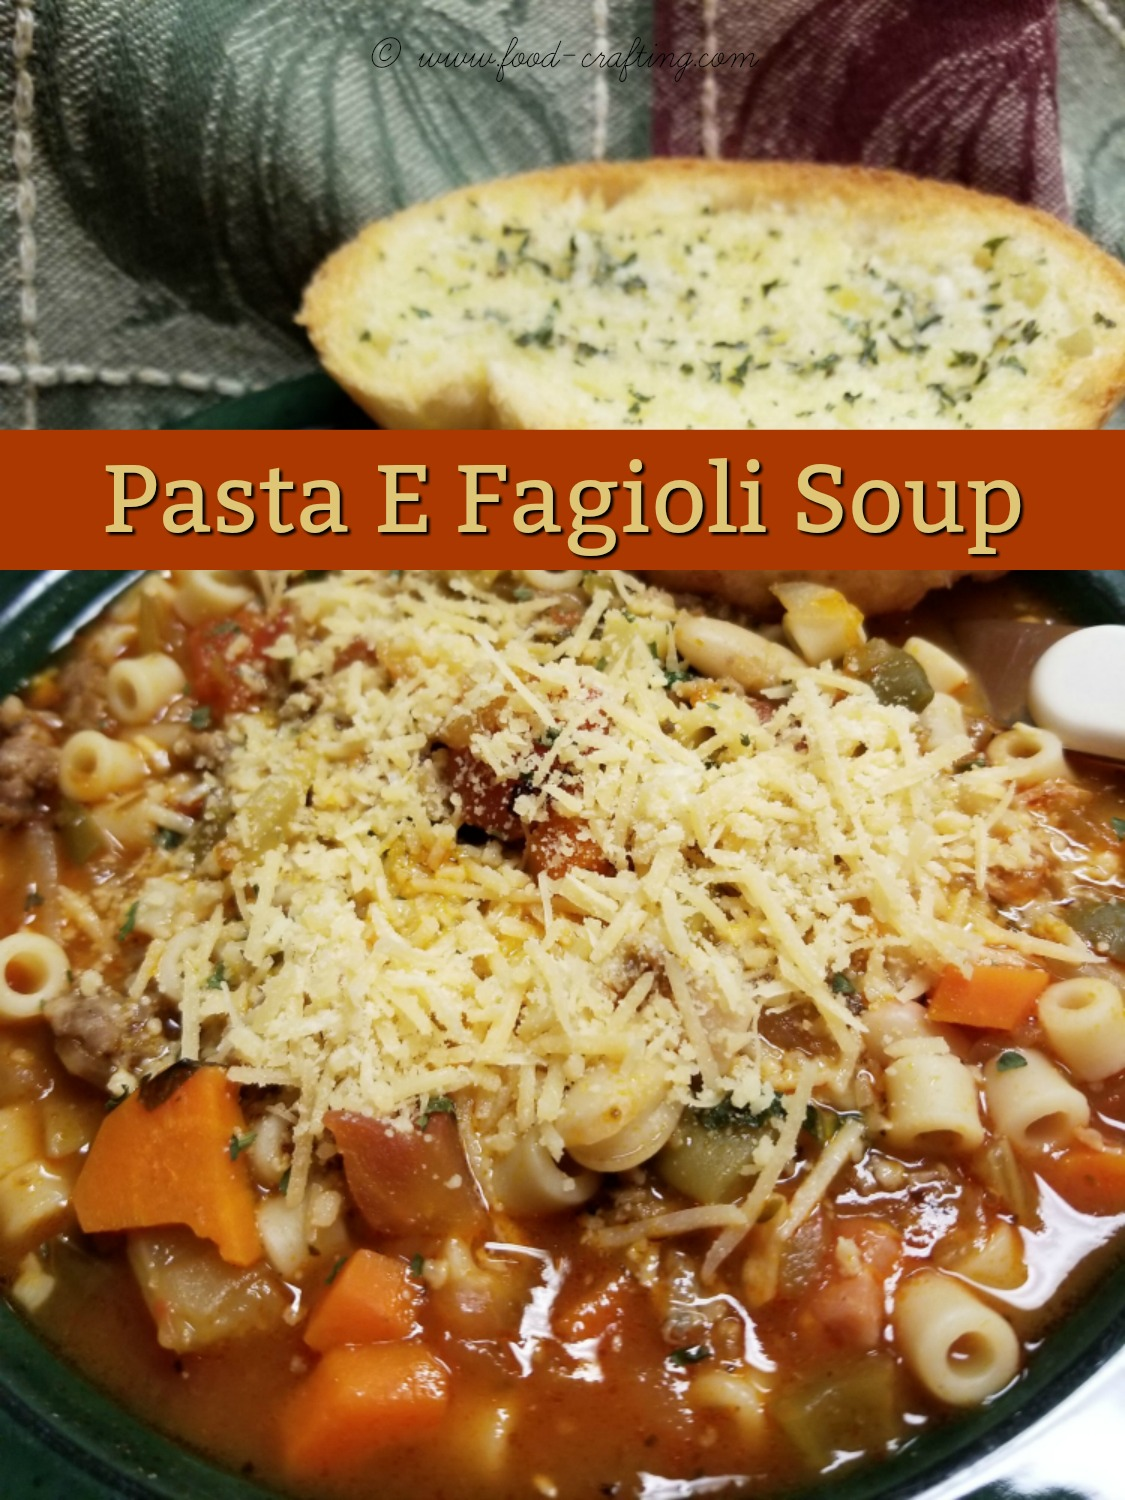 Italian Pasta E Fagioli Soup: Best One Pot Dinner!